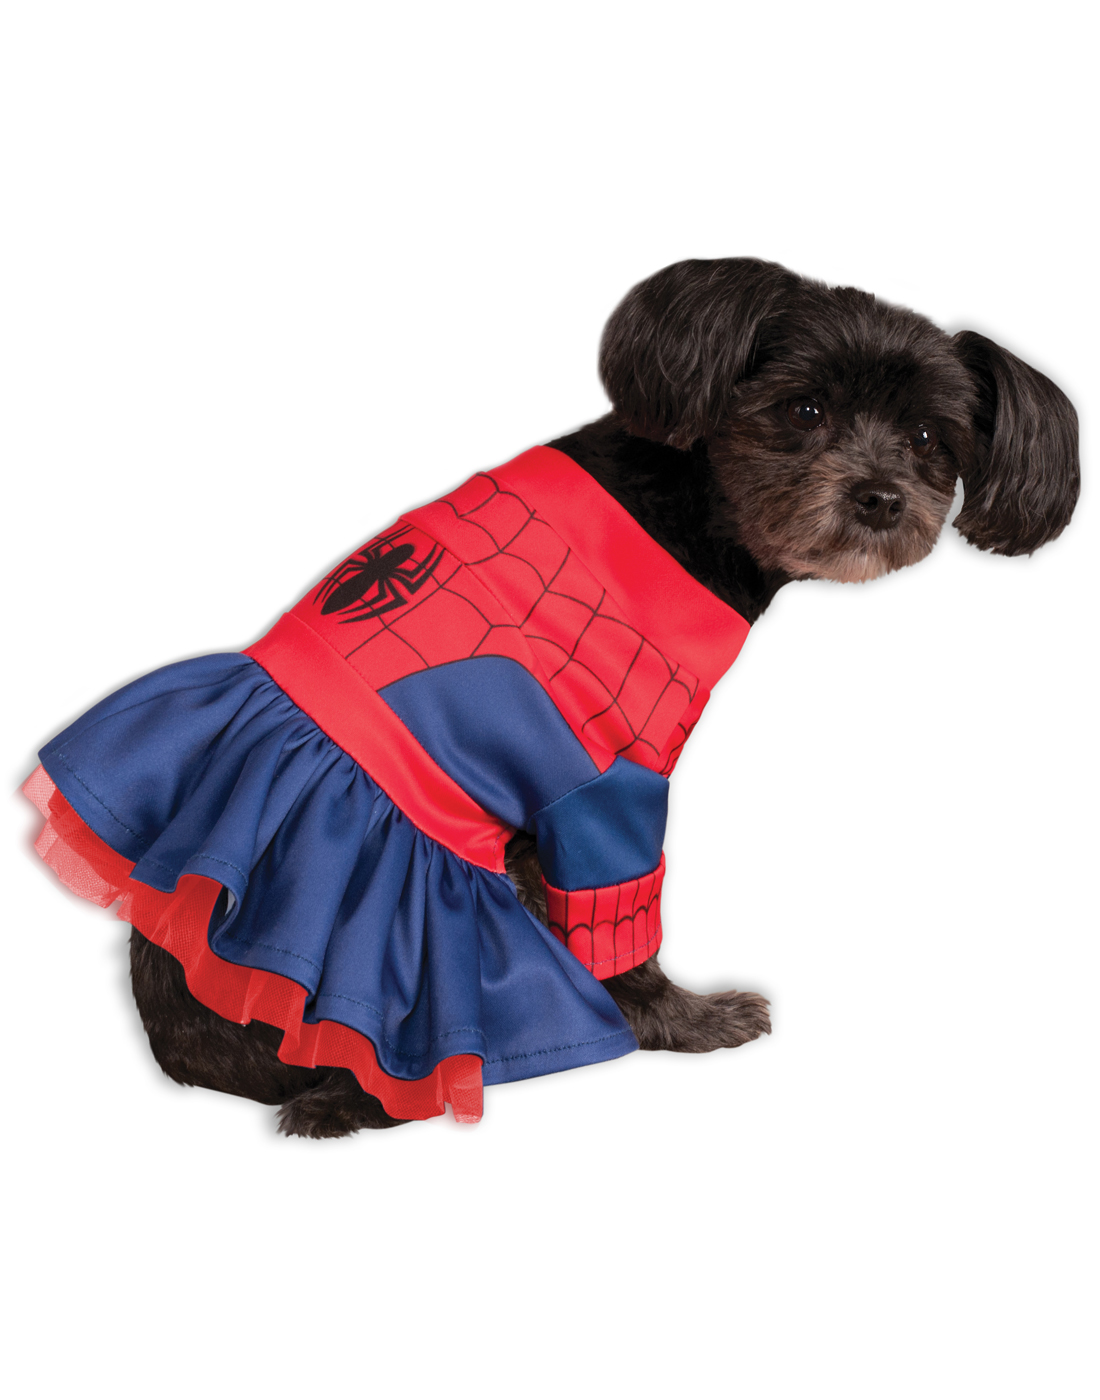 Wonder Woman Dog Fancy Dress DC Superhero Puppy Pet Halloween Costume Outfit